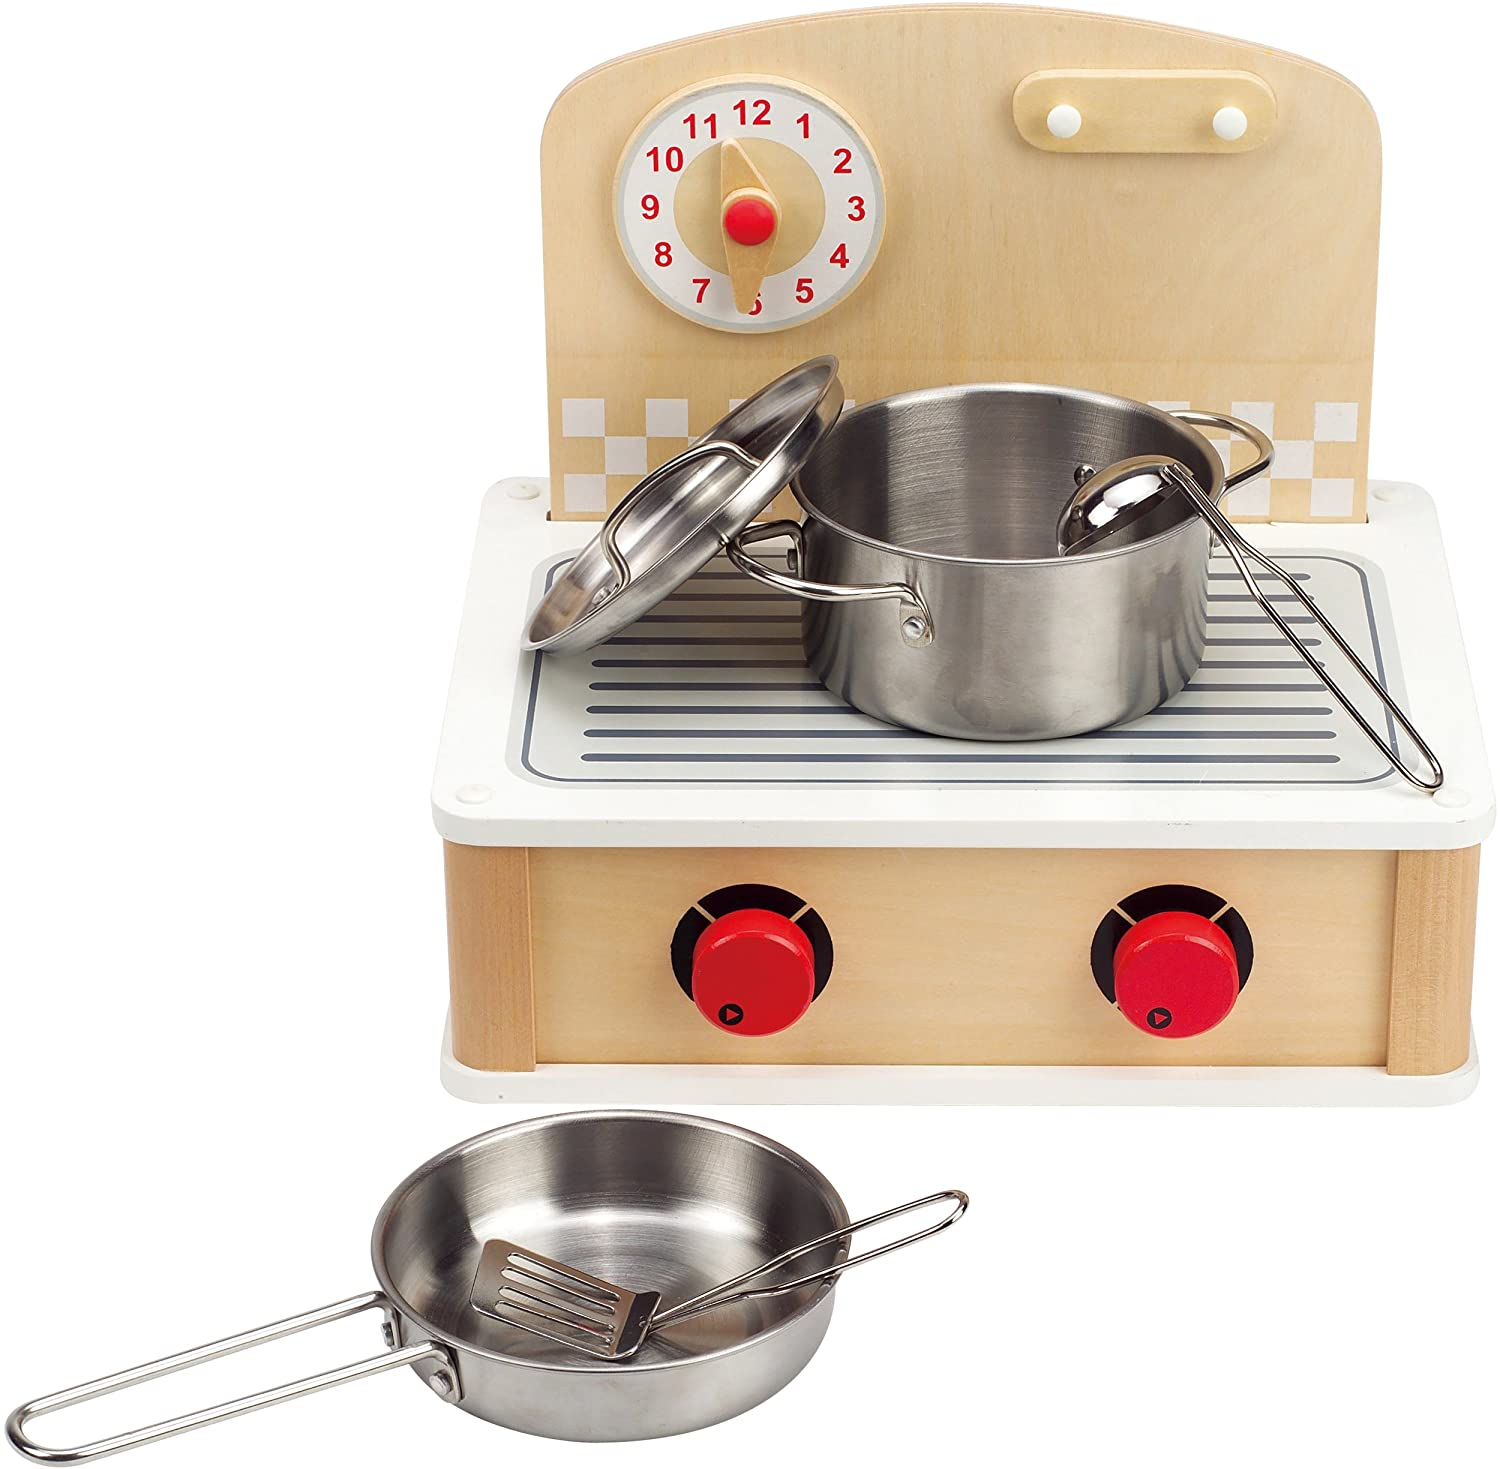 Hape Tabletop Cook and Grill Kid's Wooden Kitchen Play Set with Accessories